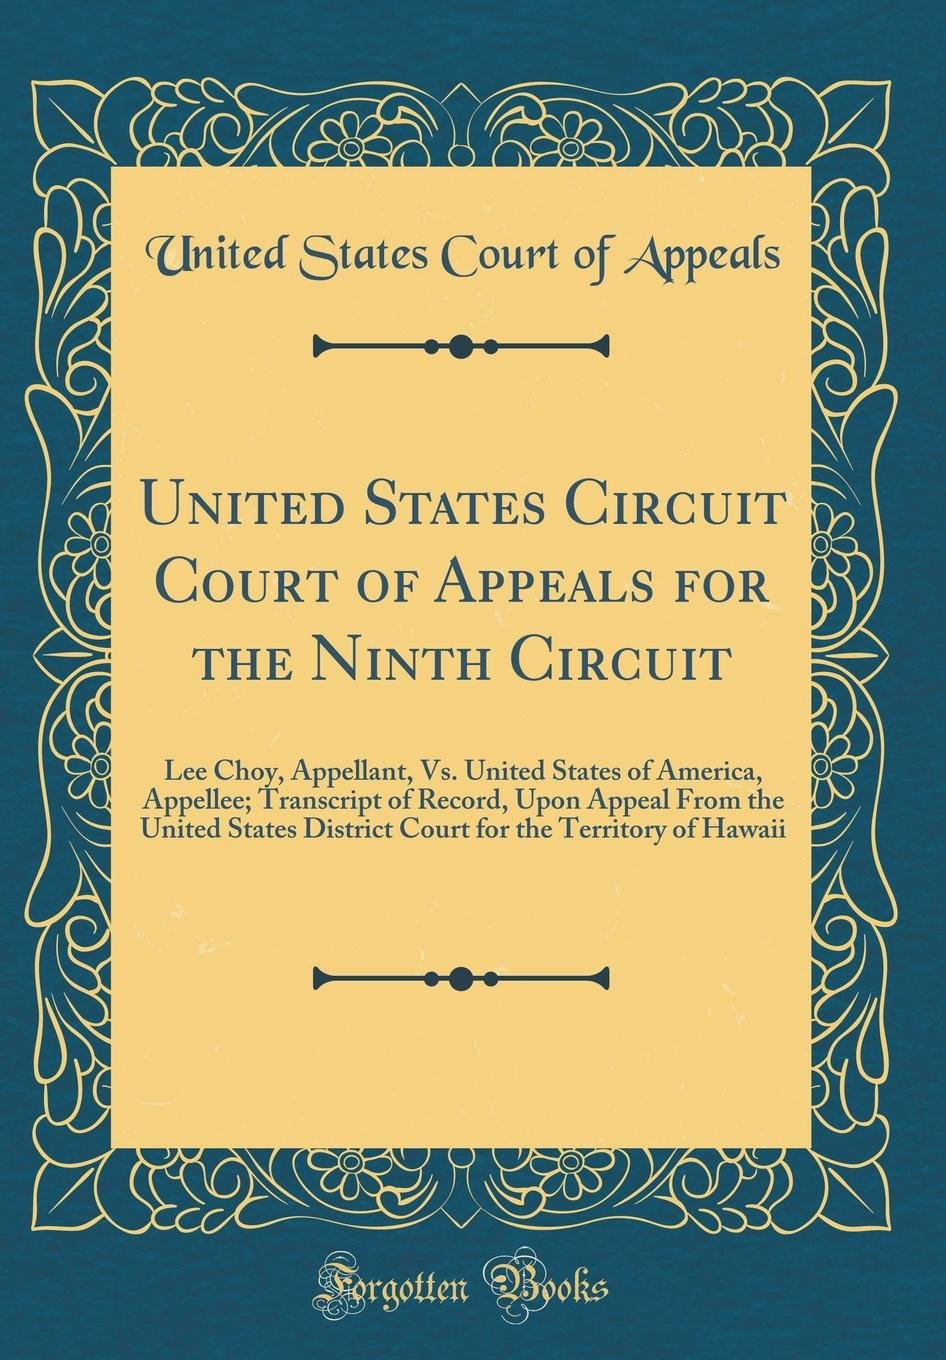 Download United States Circuit Court of Appeals for the Ninth Circuit: Lee Choy, Appellant, vs. United States of America, Appellee; Transcript of Record, Upon for the Territory of Hawaii (Classic Reprint) PDF